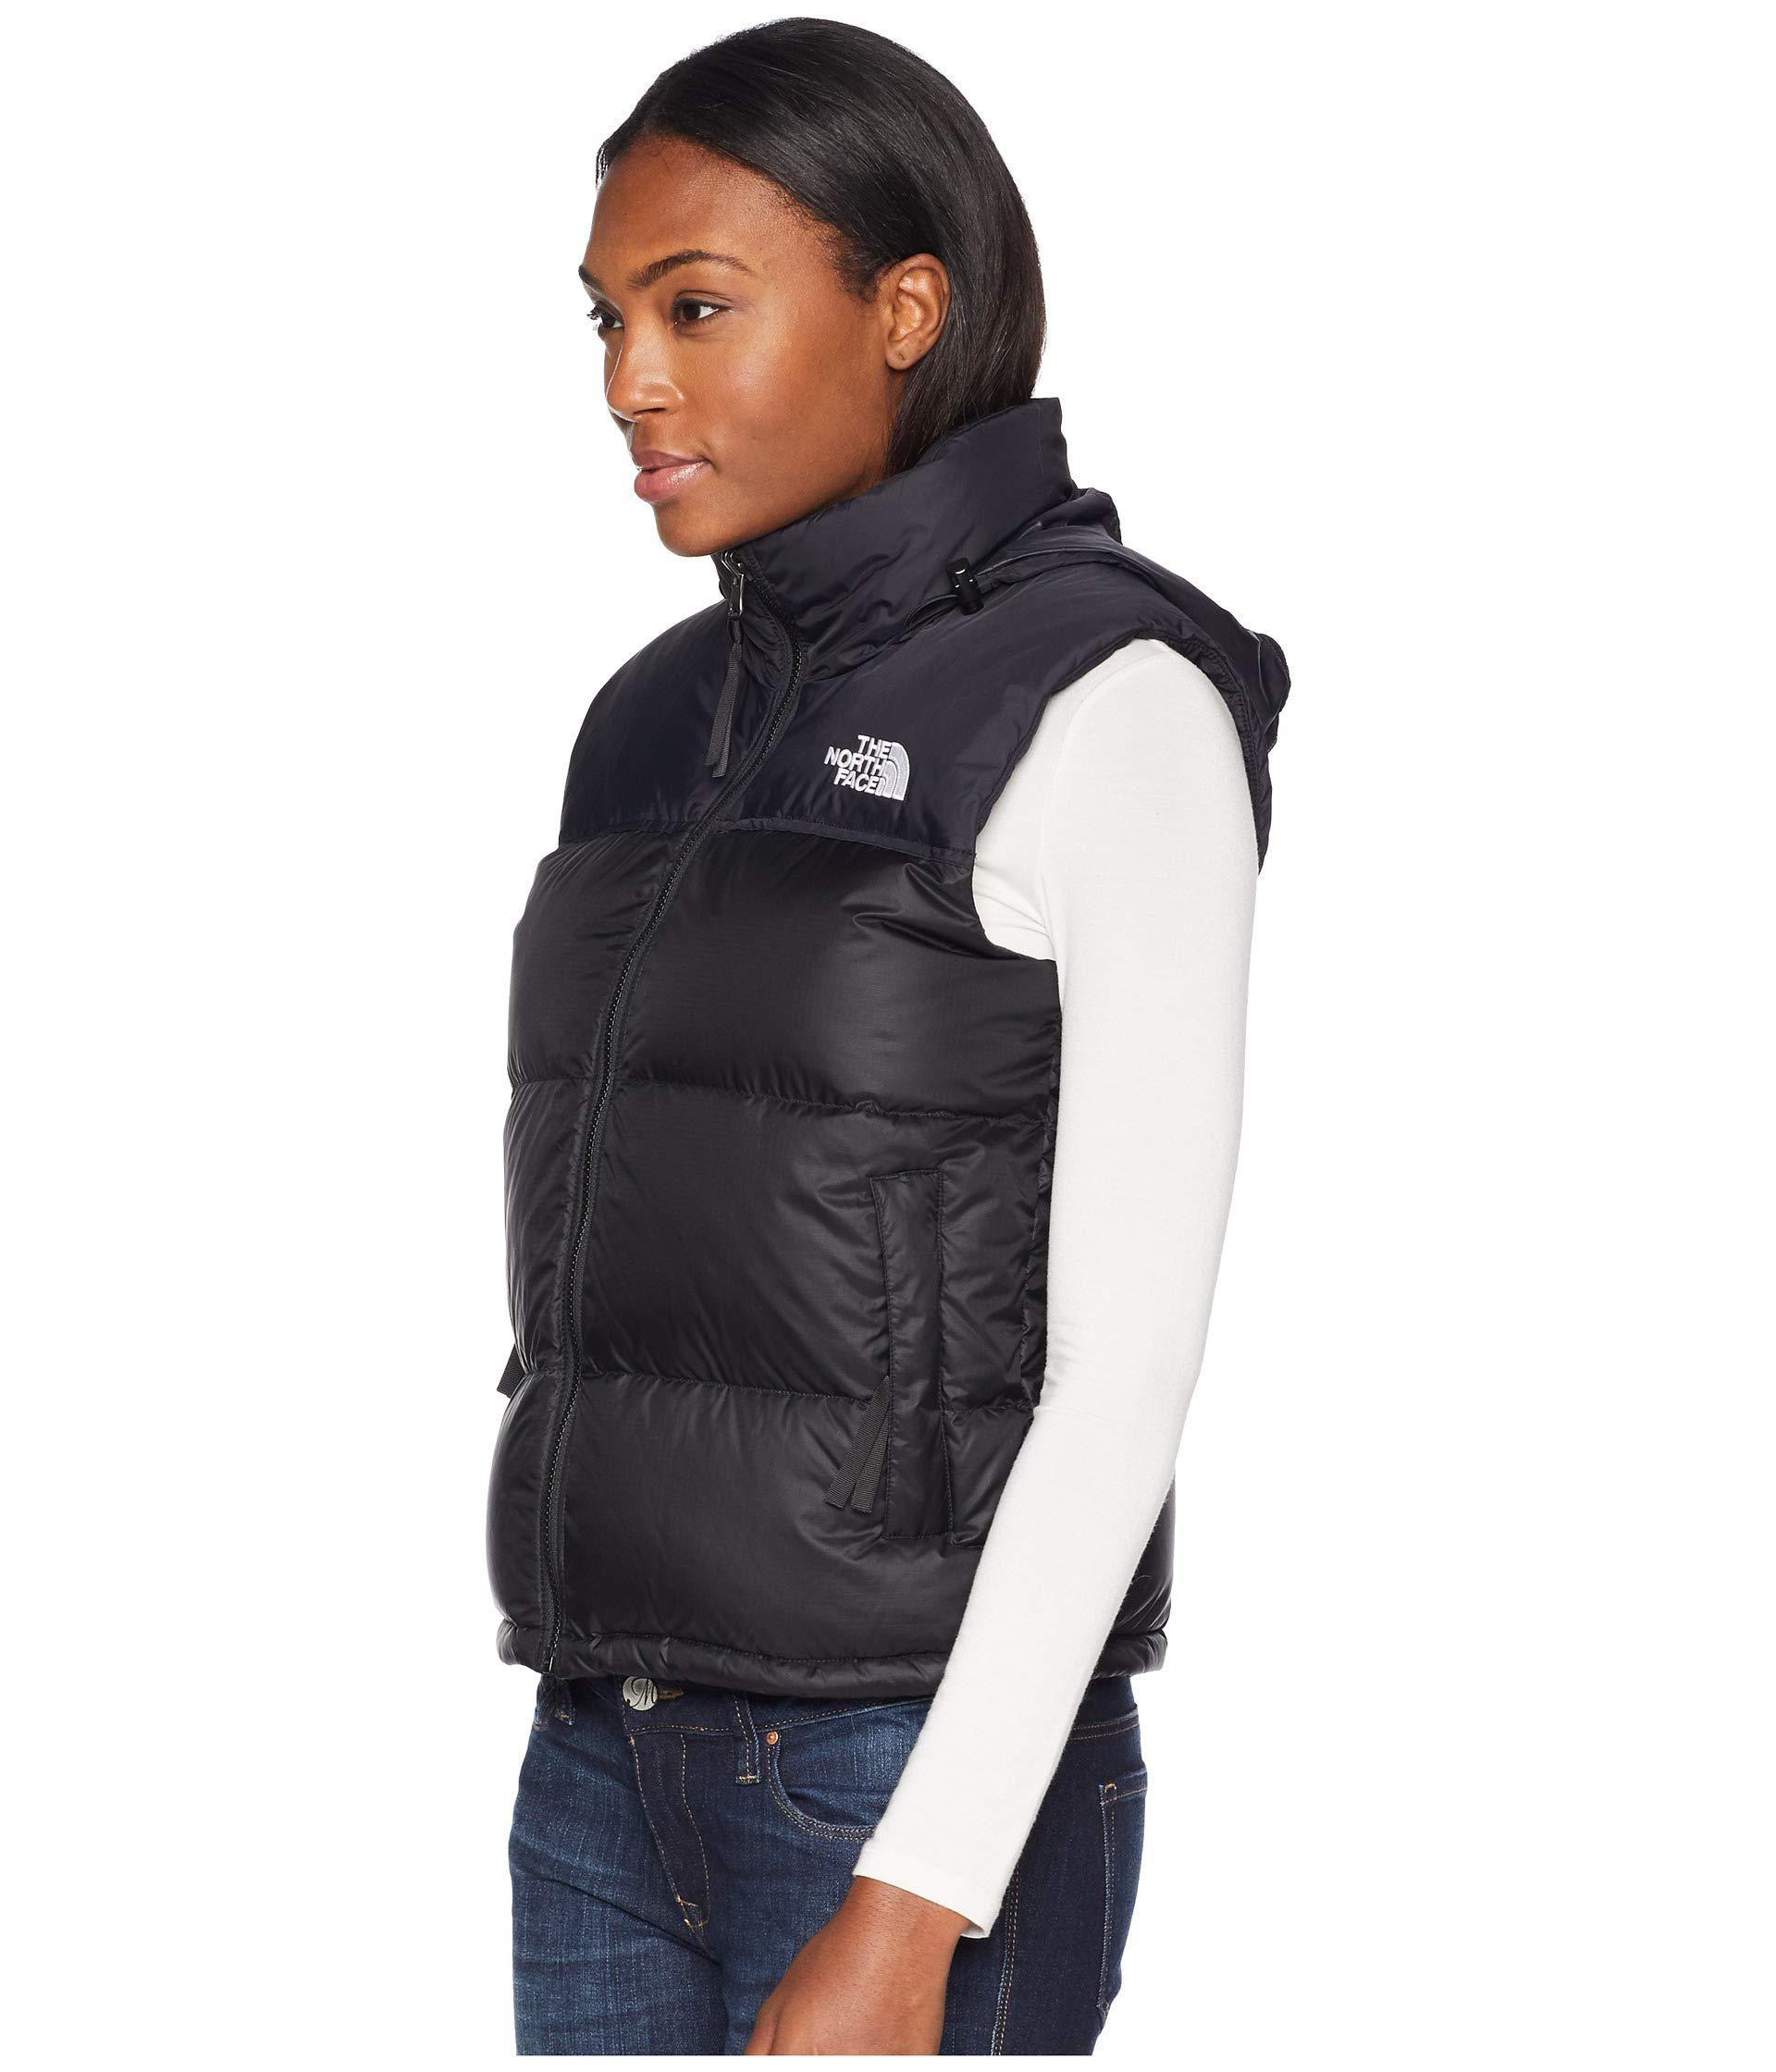 The North Face - Blue 1996 Retro Nuptse Vest (tumbleweed Green) Women s Vest  -. View fullscreen 8fe5e9b3b